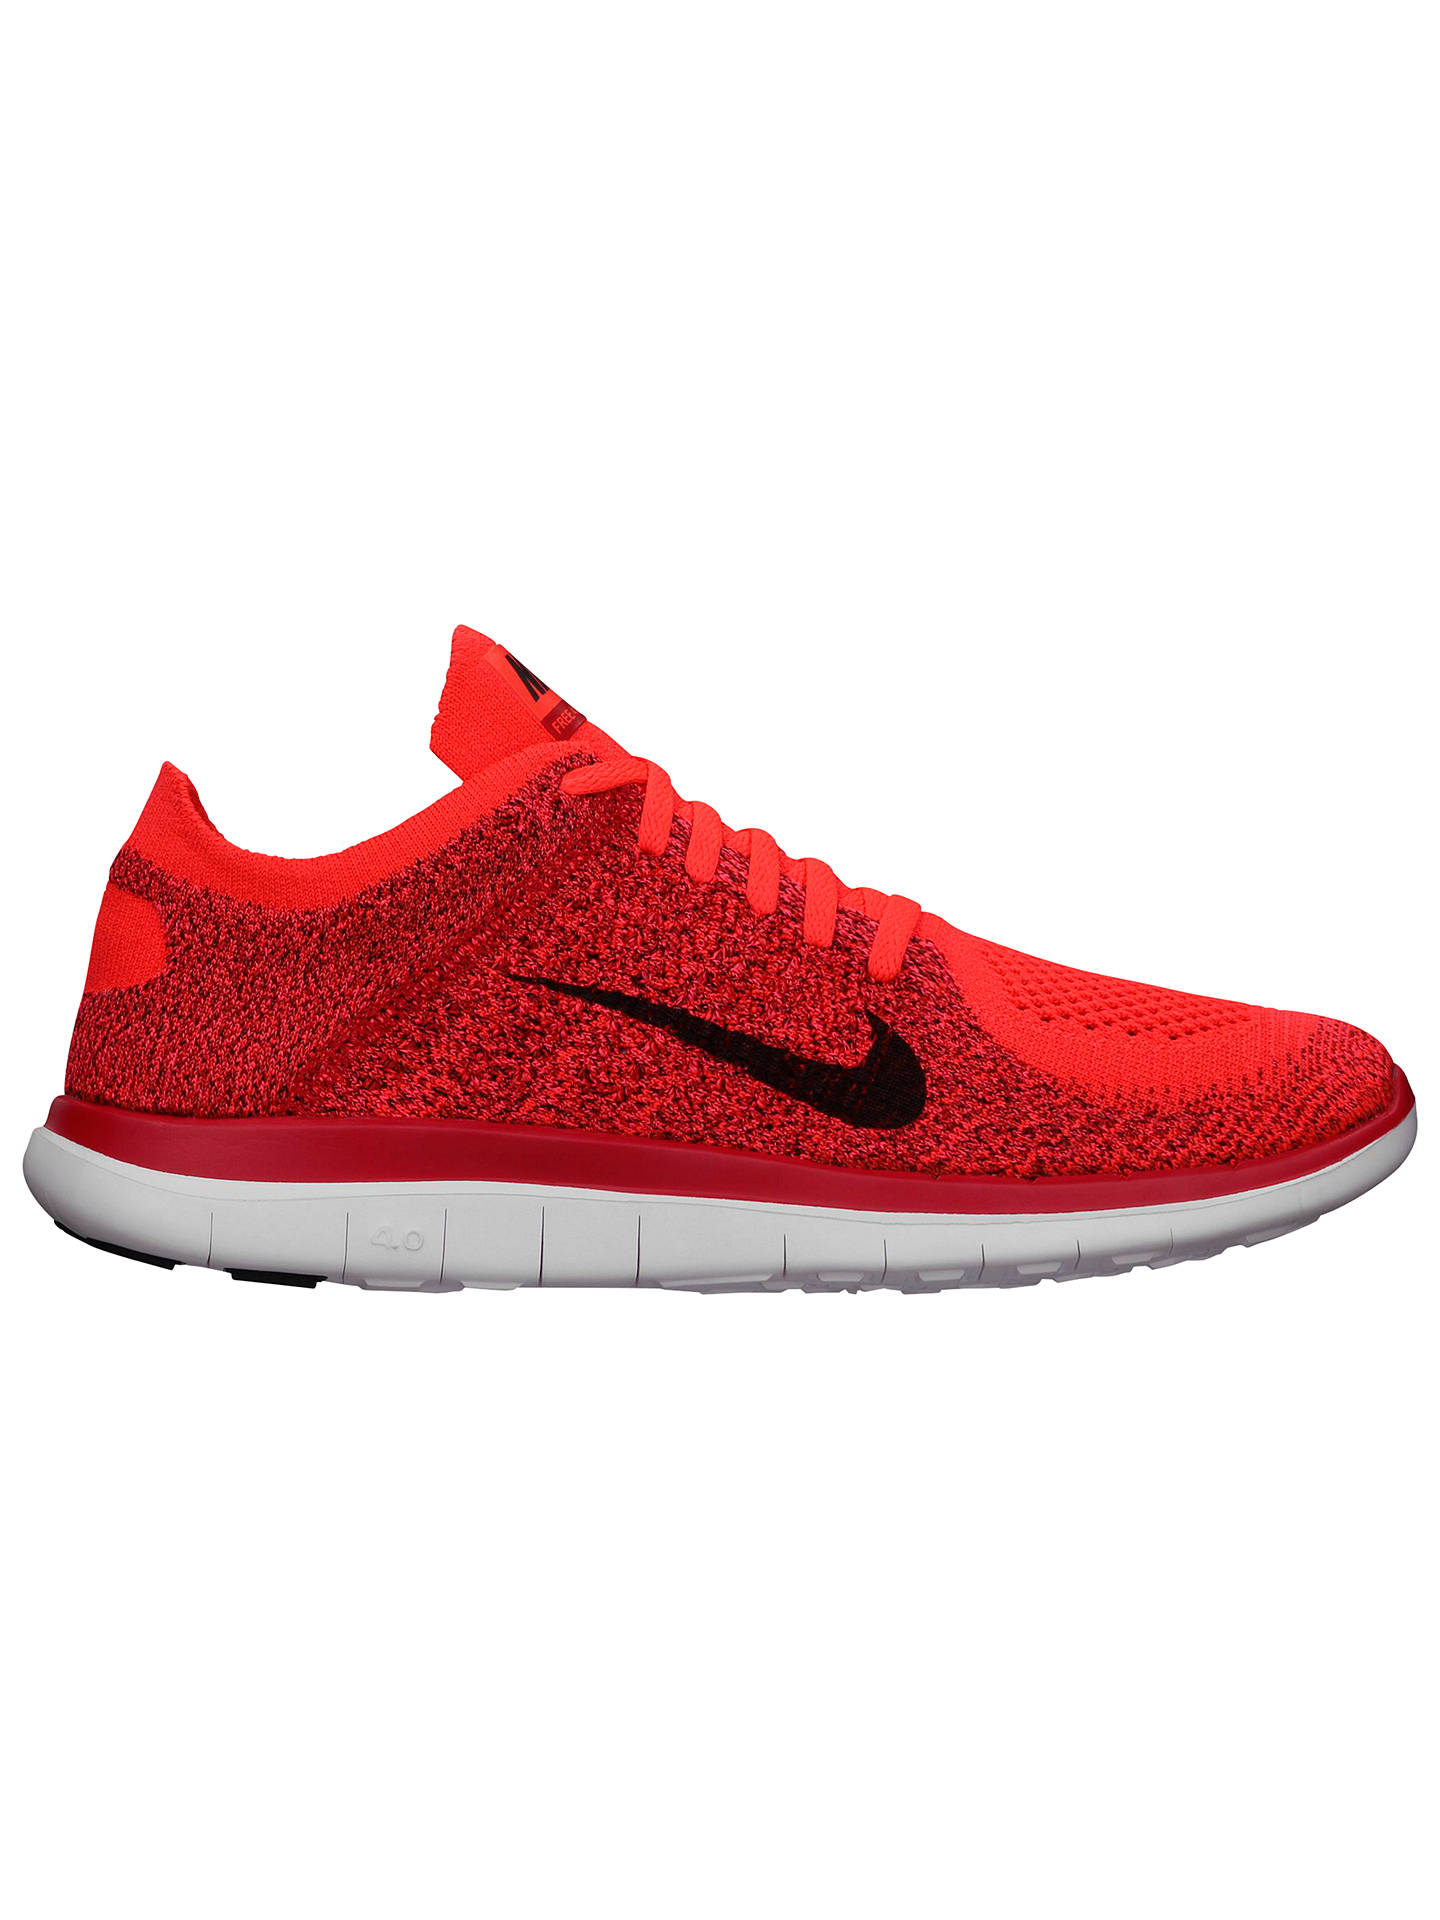 more photos 8cc99 e92a6 Buy Nike Free 4.0 Flyknit Men s Running Shoes, Bright Crimson University  Red, 7 ...